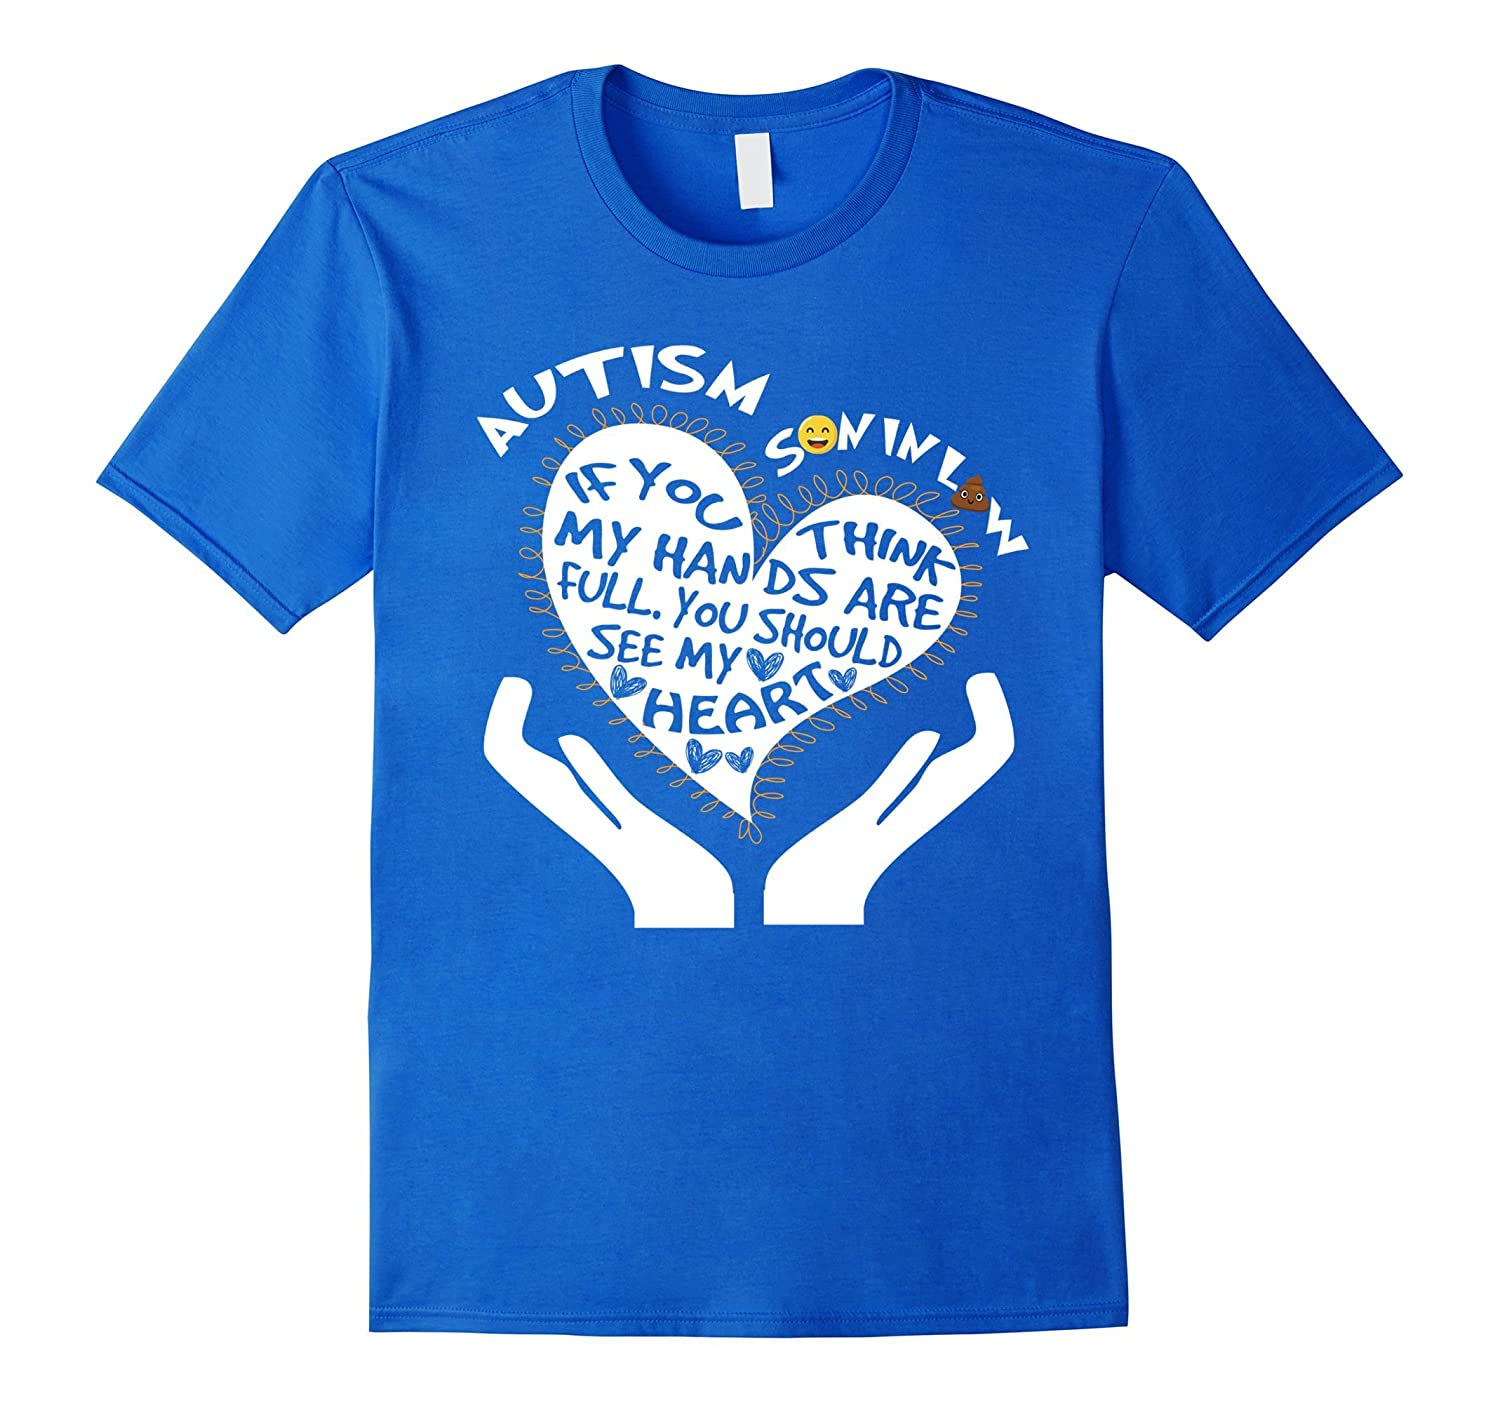 Autism Son In Law If You Think My Heart Are Full T-Shirt